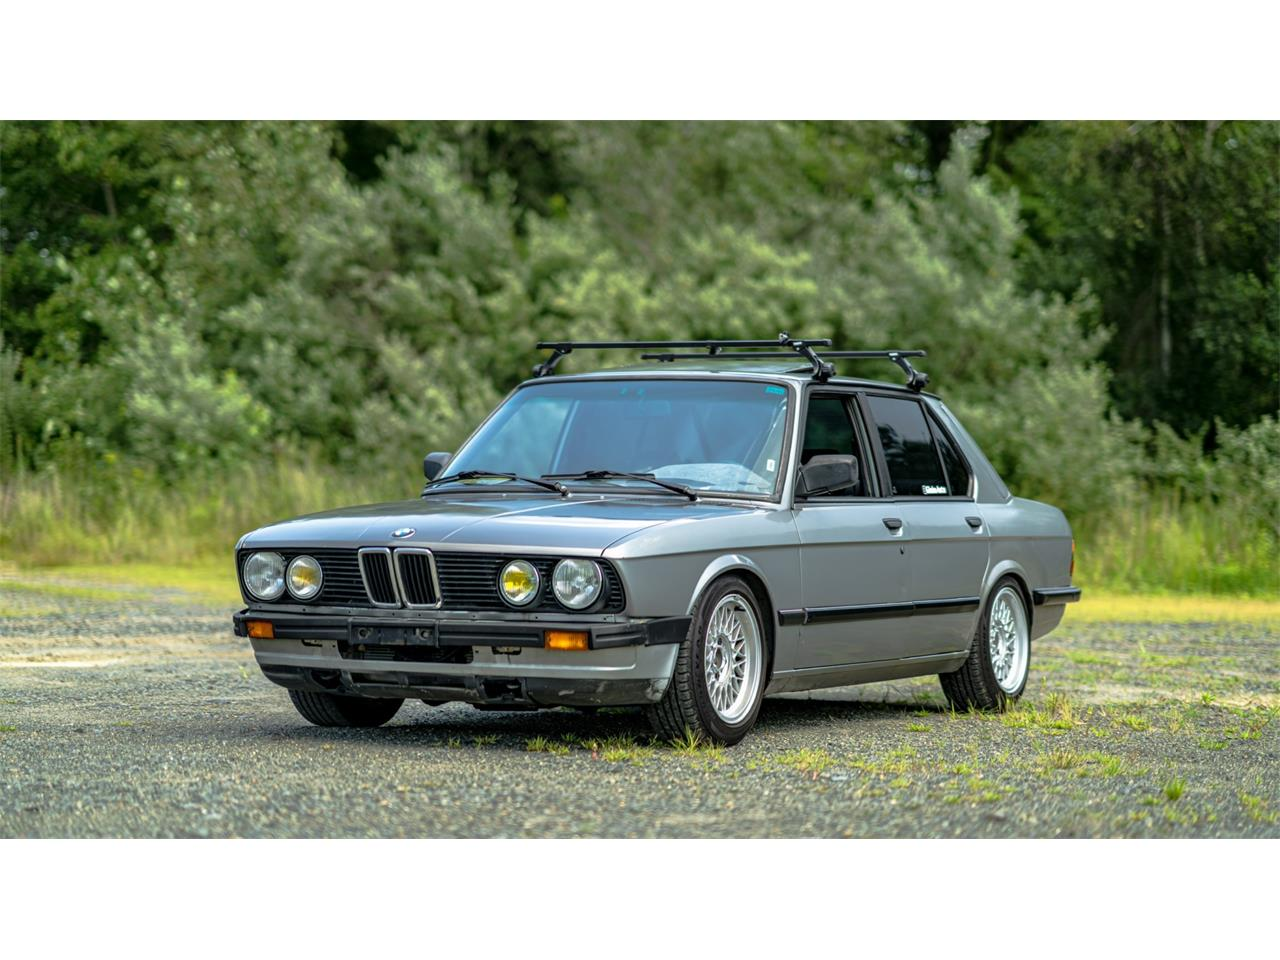 1988 BMW 528e for sale in South River, NJ – photo 2